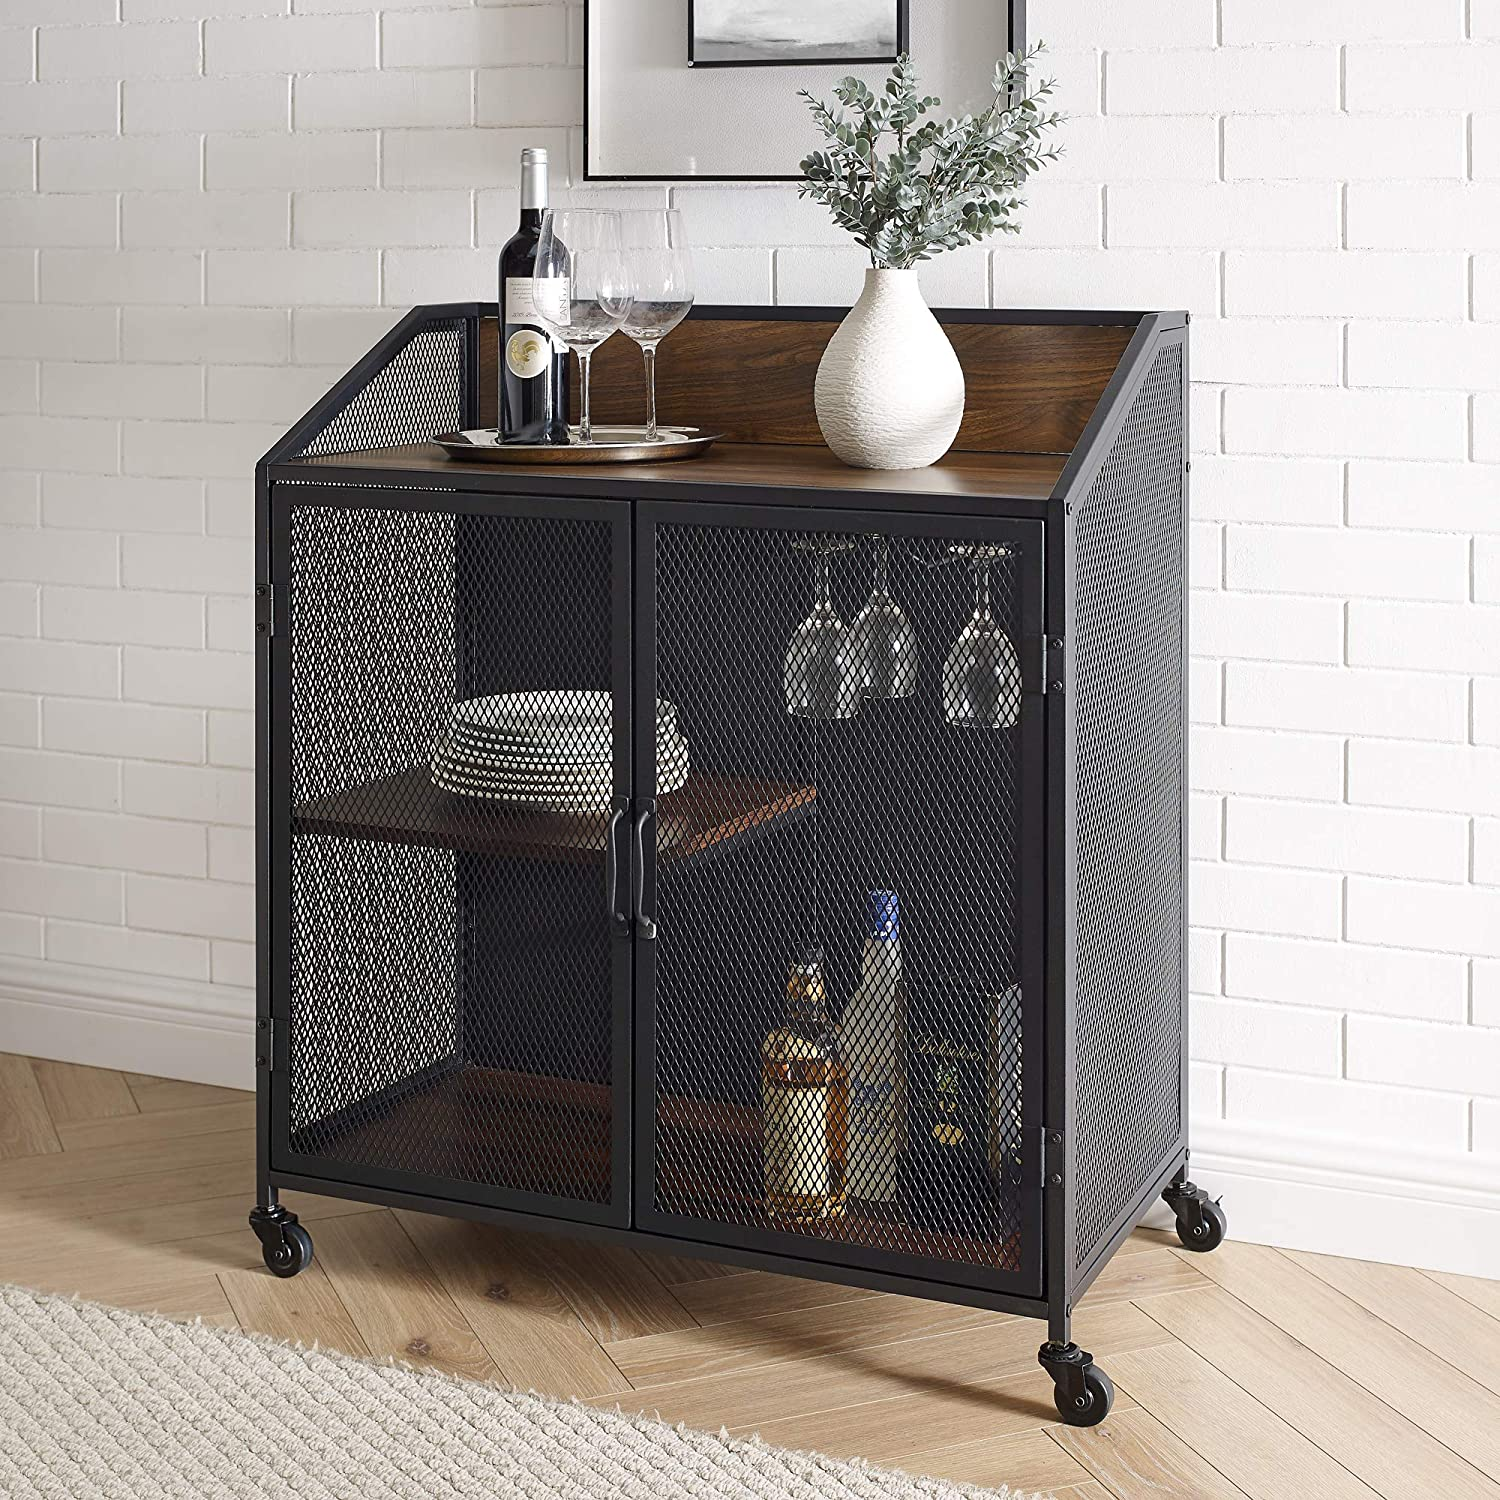 Enjoy fast, free nationwide shipping!  Family owned and operated, HawkinsWoodshop.com is your one stop shop for affordable furniture.  Shop HawkinsWoodshop.com for solid wood & metal modern, traditional, contemporary, industrial, custom, rustic, and farmhouse furniture including our Industrial Wood and Metal Bar Cabinet with Wheels in Dark Walnut.